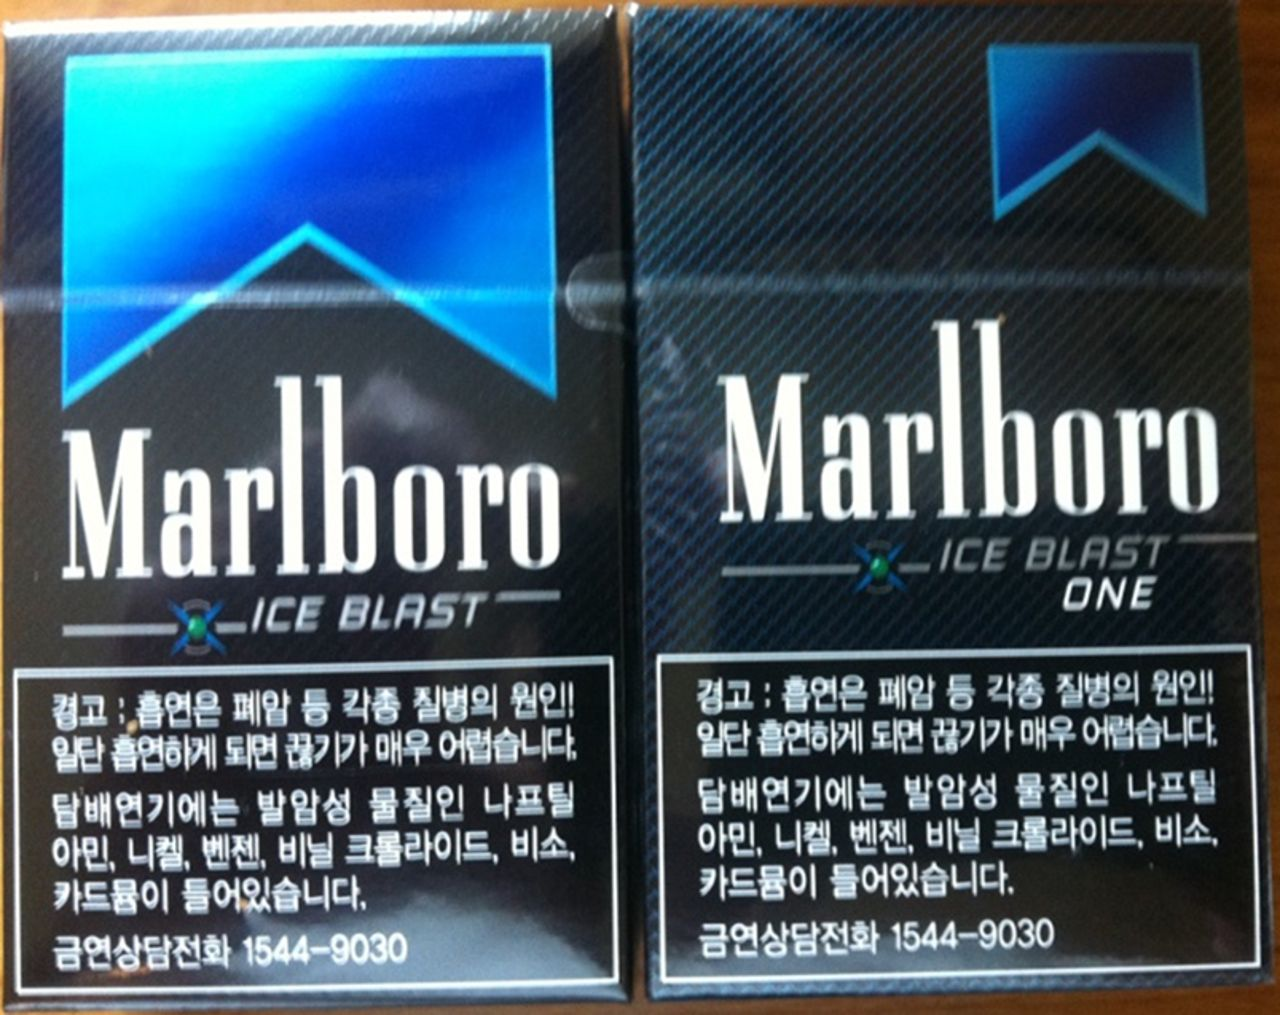 Into the black: Marlboro brand architecture, packaging and marketing